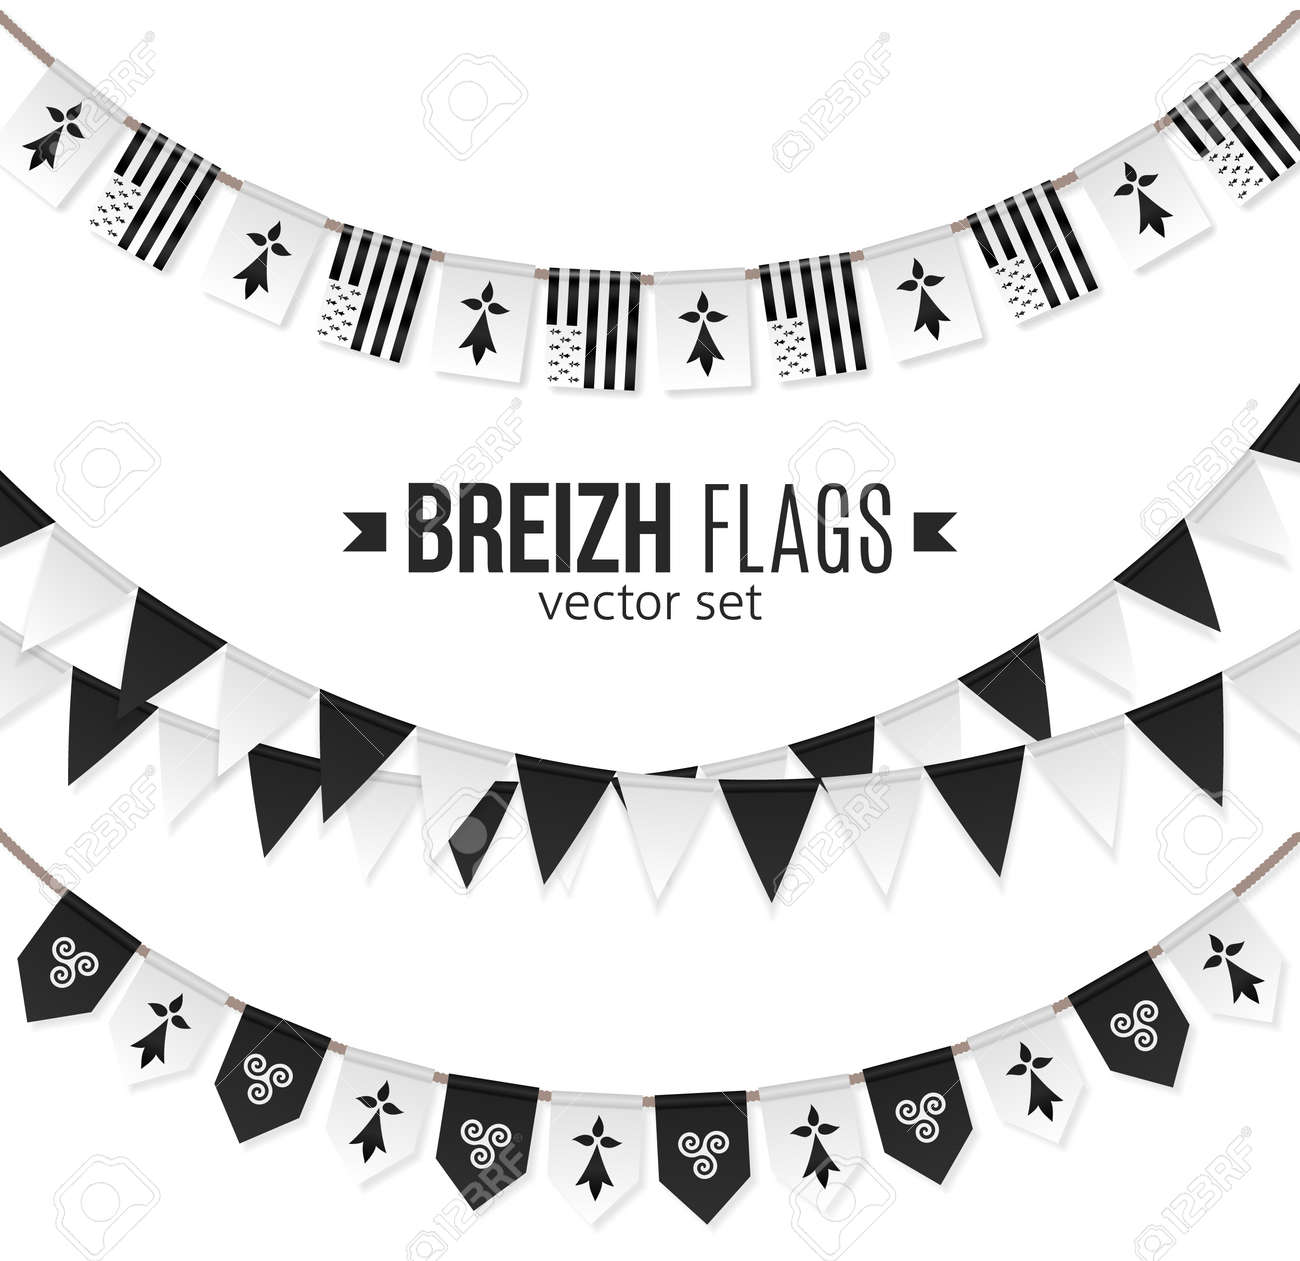 Vector flags and symbols of Brittany on garlands with triskels and hermines - 108987090